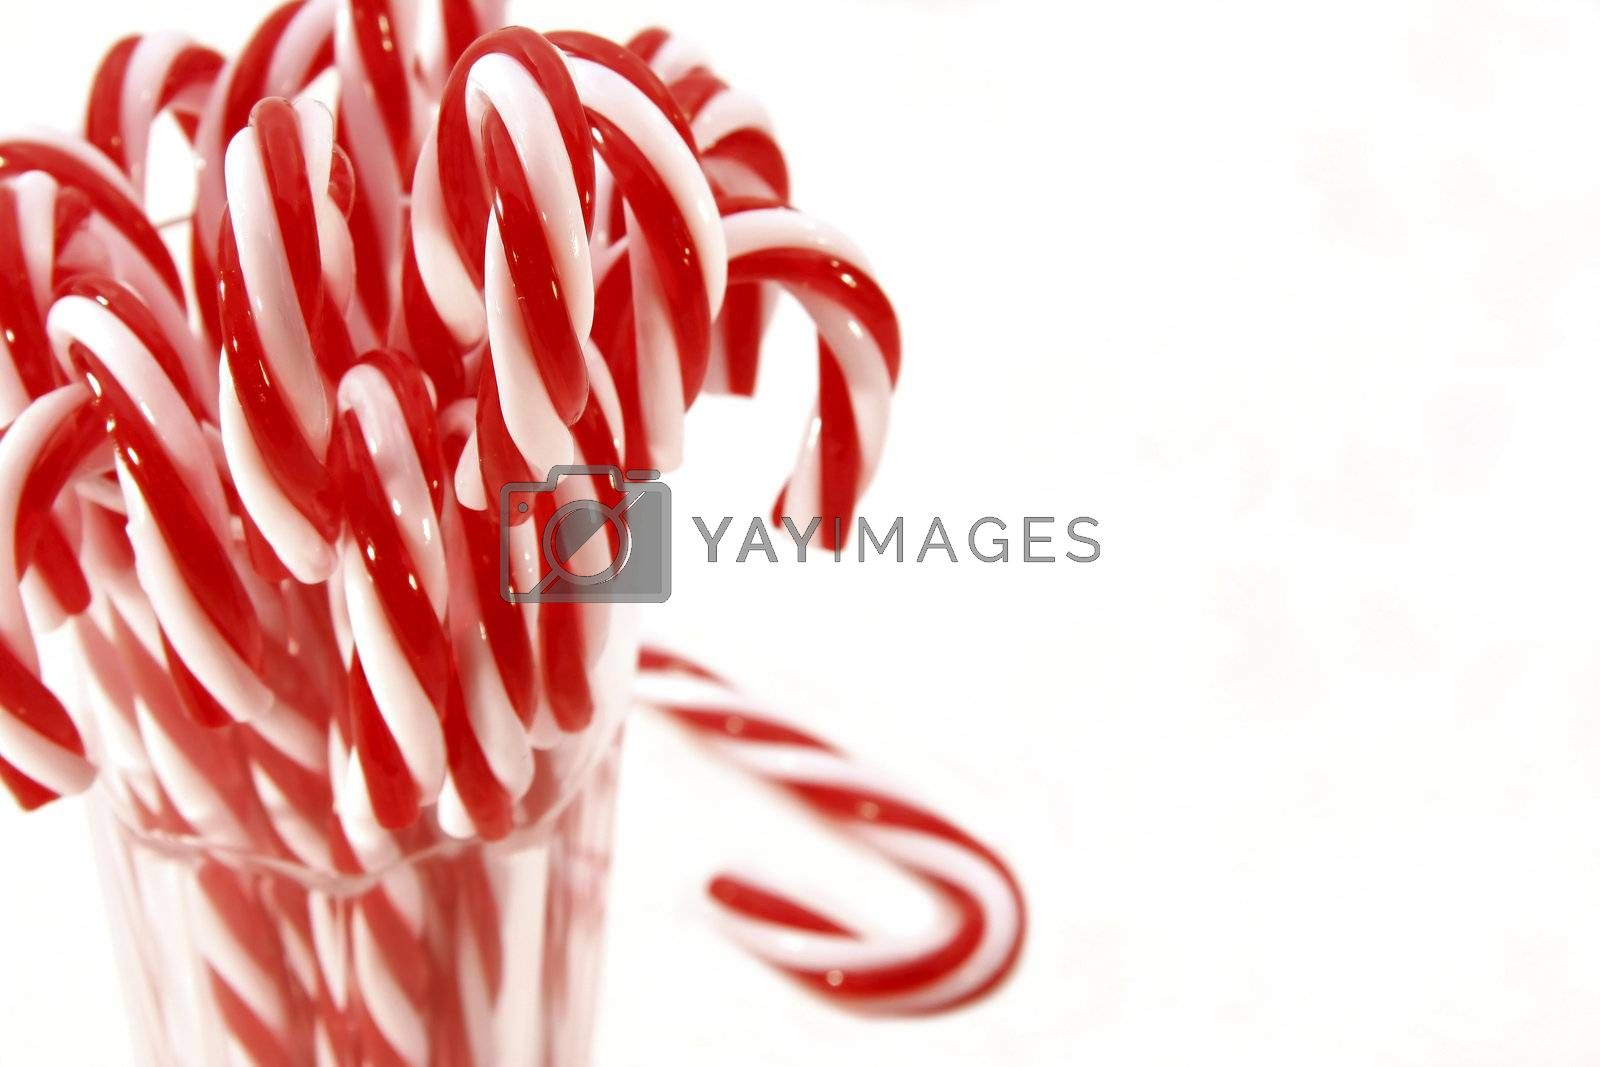 Lots of candy canes by Sandralise